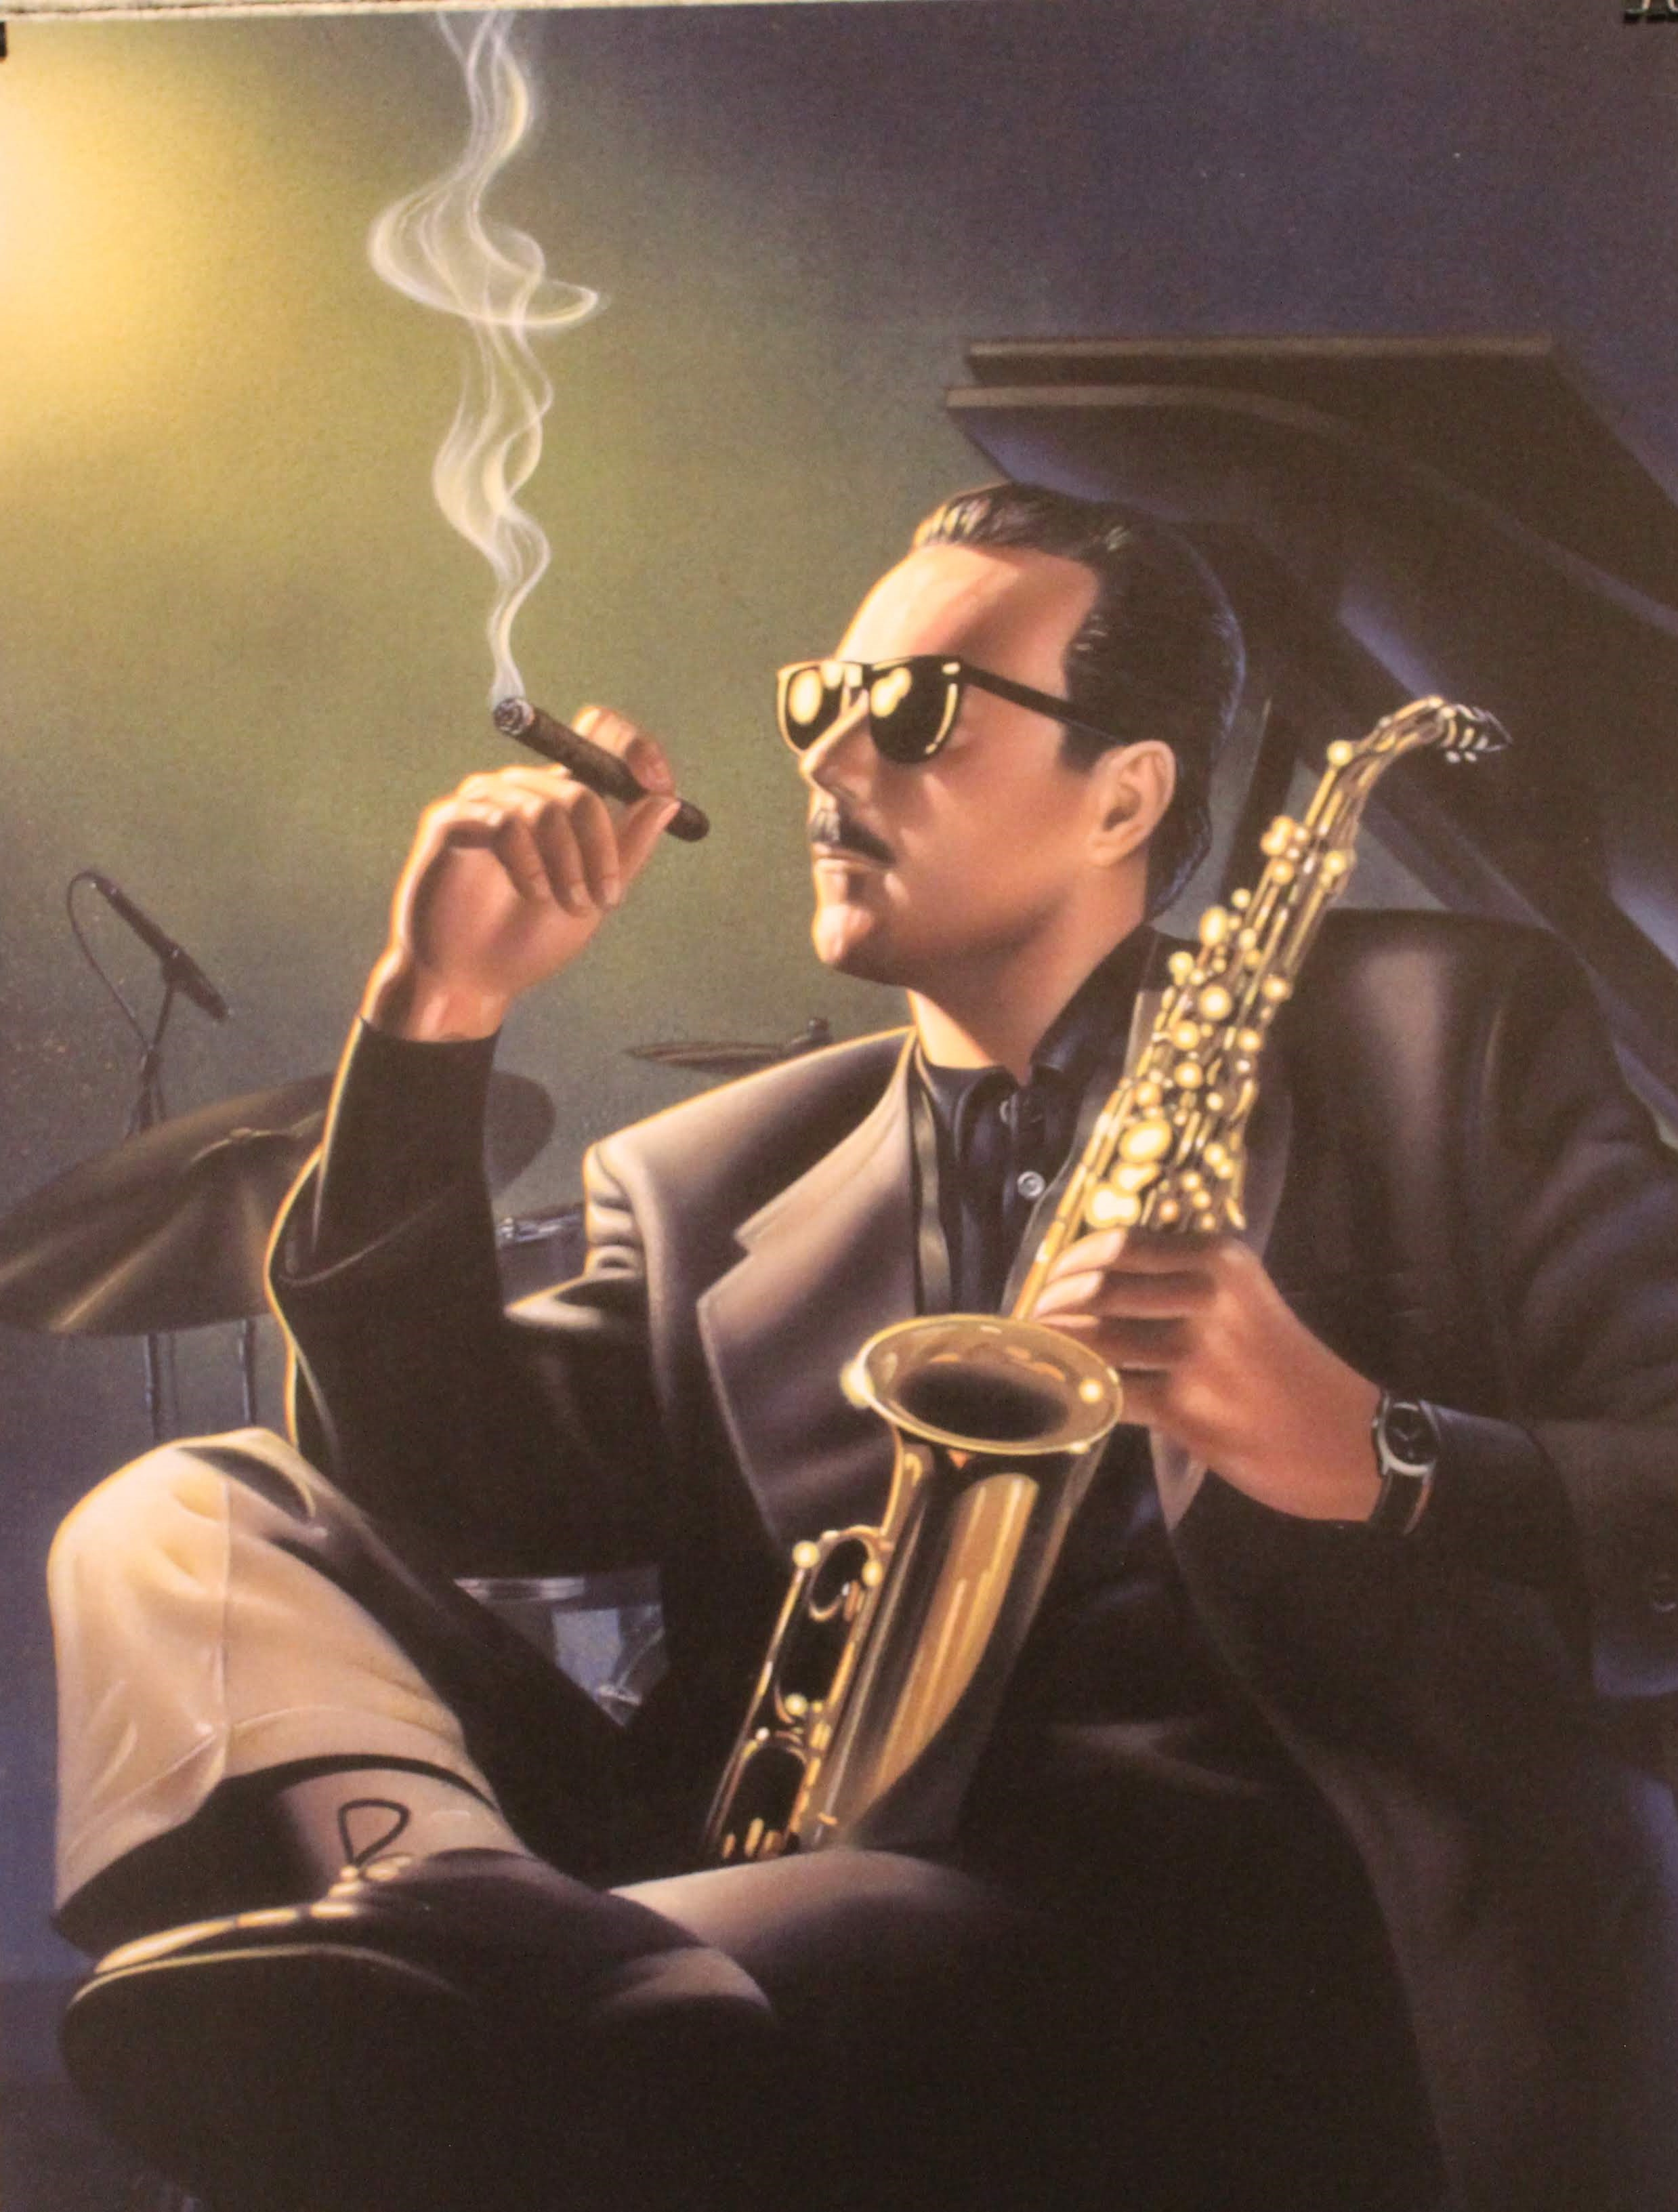 Image of a magazine ad featuring a man holding a saxophone and smoking